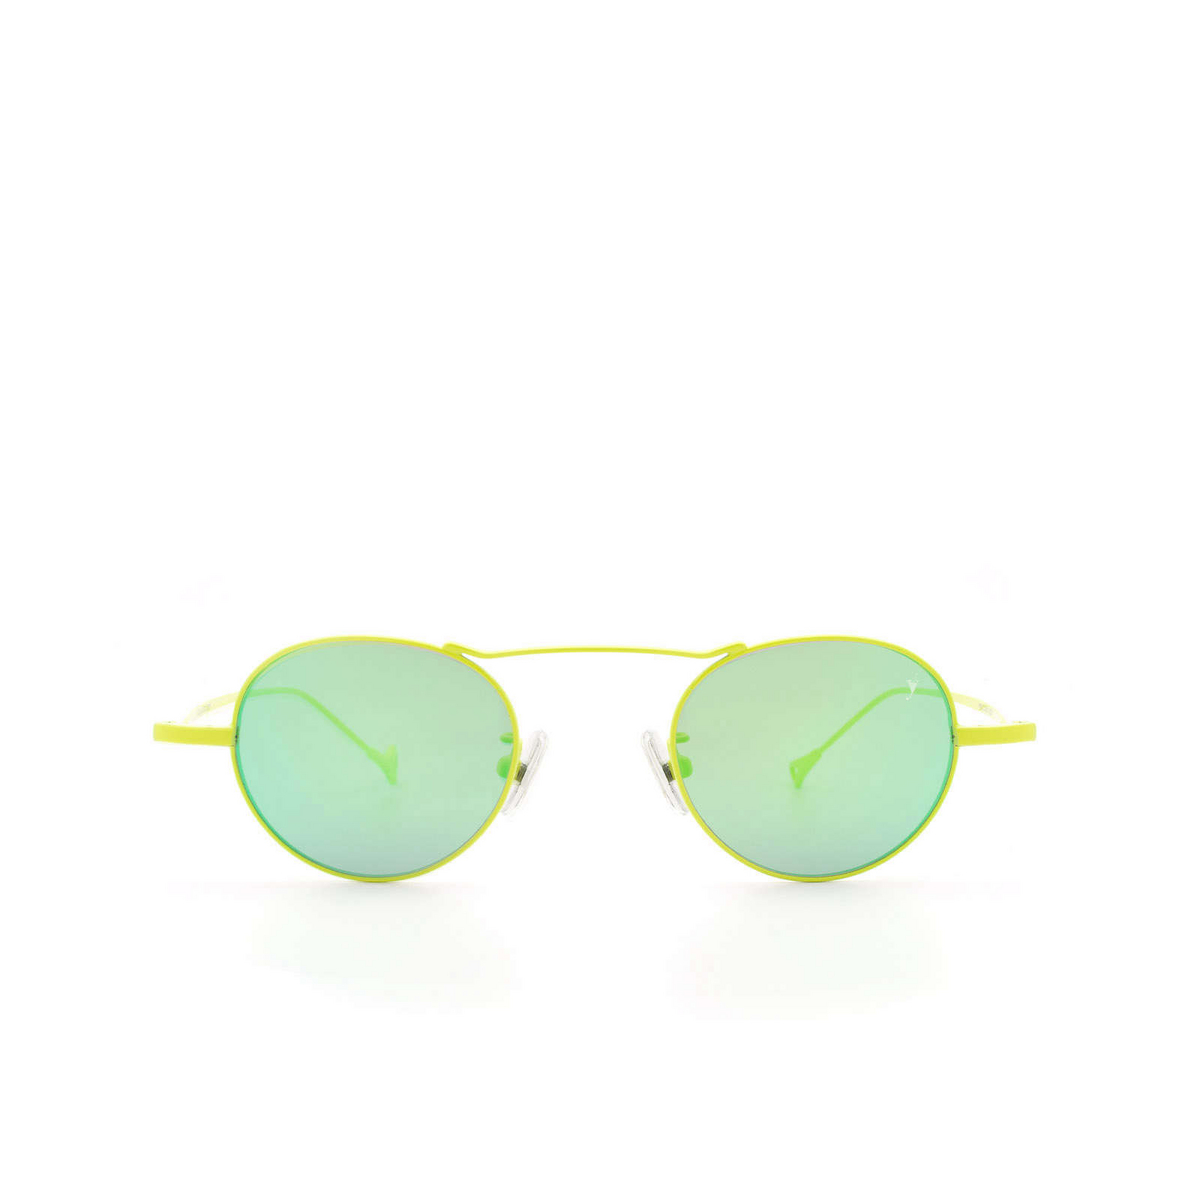 Eyepetizer® Round Sunglasses: Yves color Green Lime C.12-36 - front view.